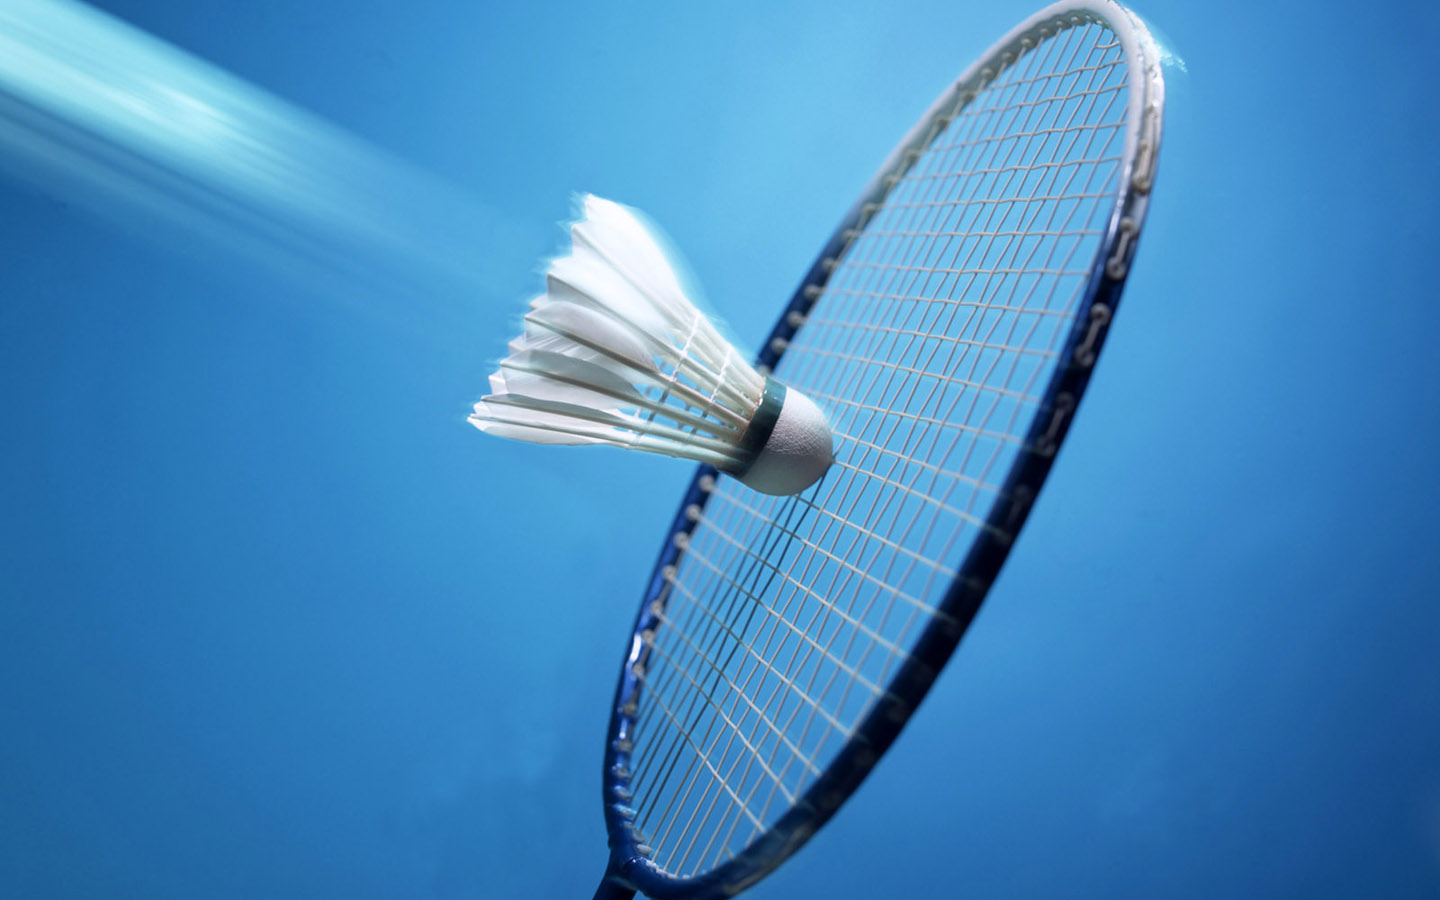 Badminton Betting Handicap – Knowledge on the odds